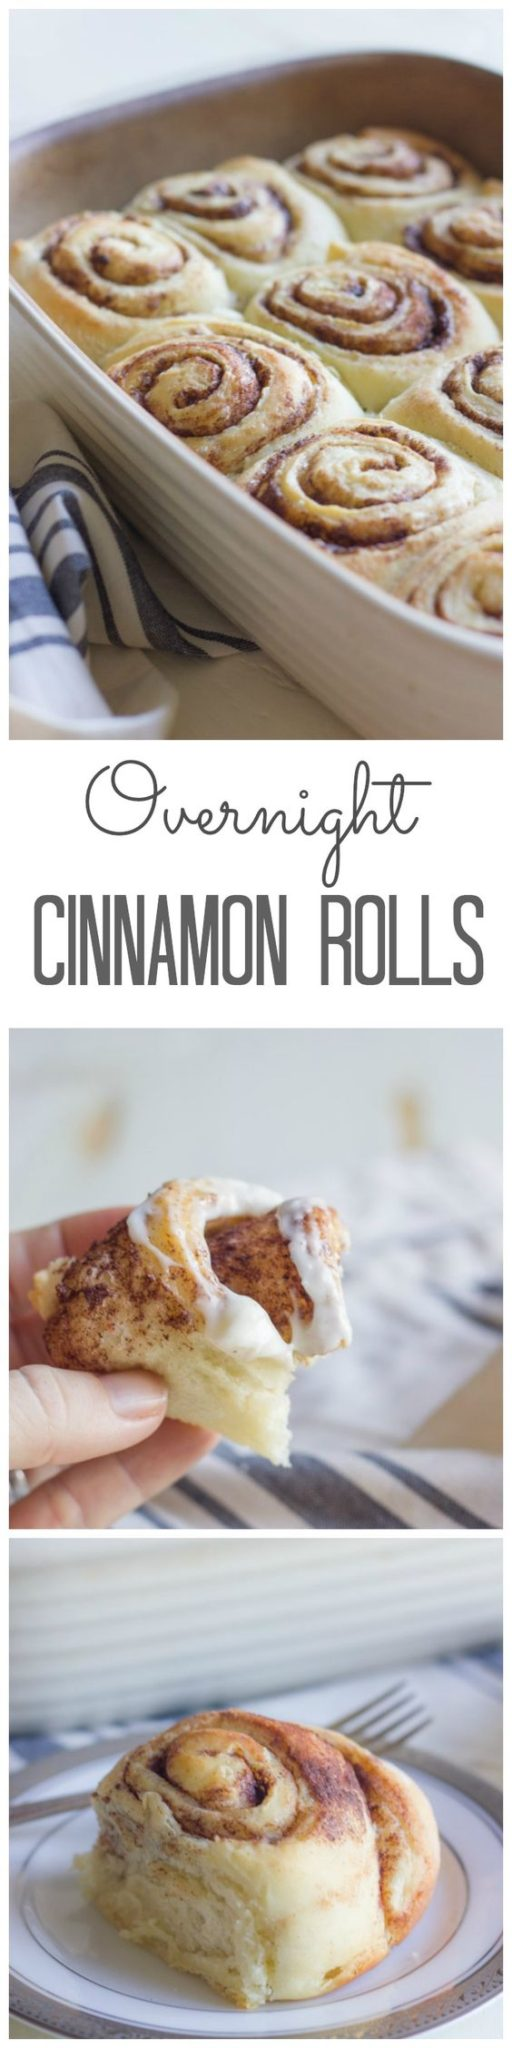 Overnight Cinnamon Rolls With Cream Cheese Frosting Recipe | Lovely Little Kitchen - The BEST Cinnamon Rolls Recipes - Perfect Treats for Breakfast, Brunch, Desserts, Christmas Morning, Special Occasions and Holidays #cinnamonrolls #cinnamon #cinnamontreats #cinnamonrollsrecipes #cinnamondesserts #breakfastrolls #sweetrolls